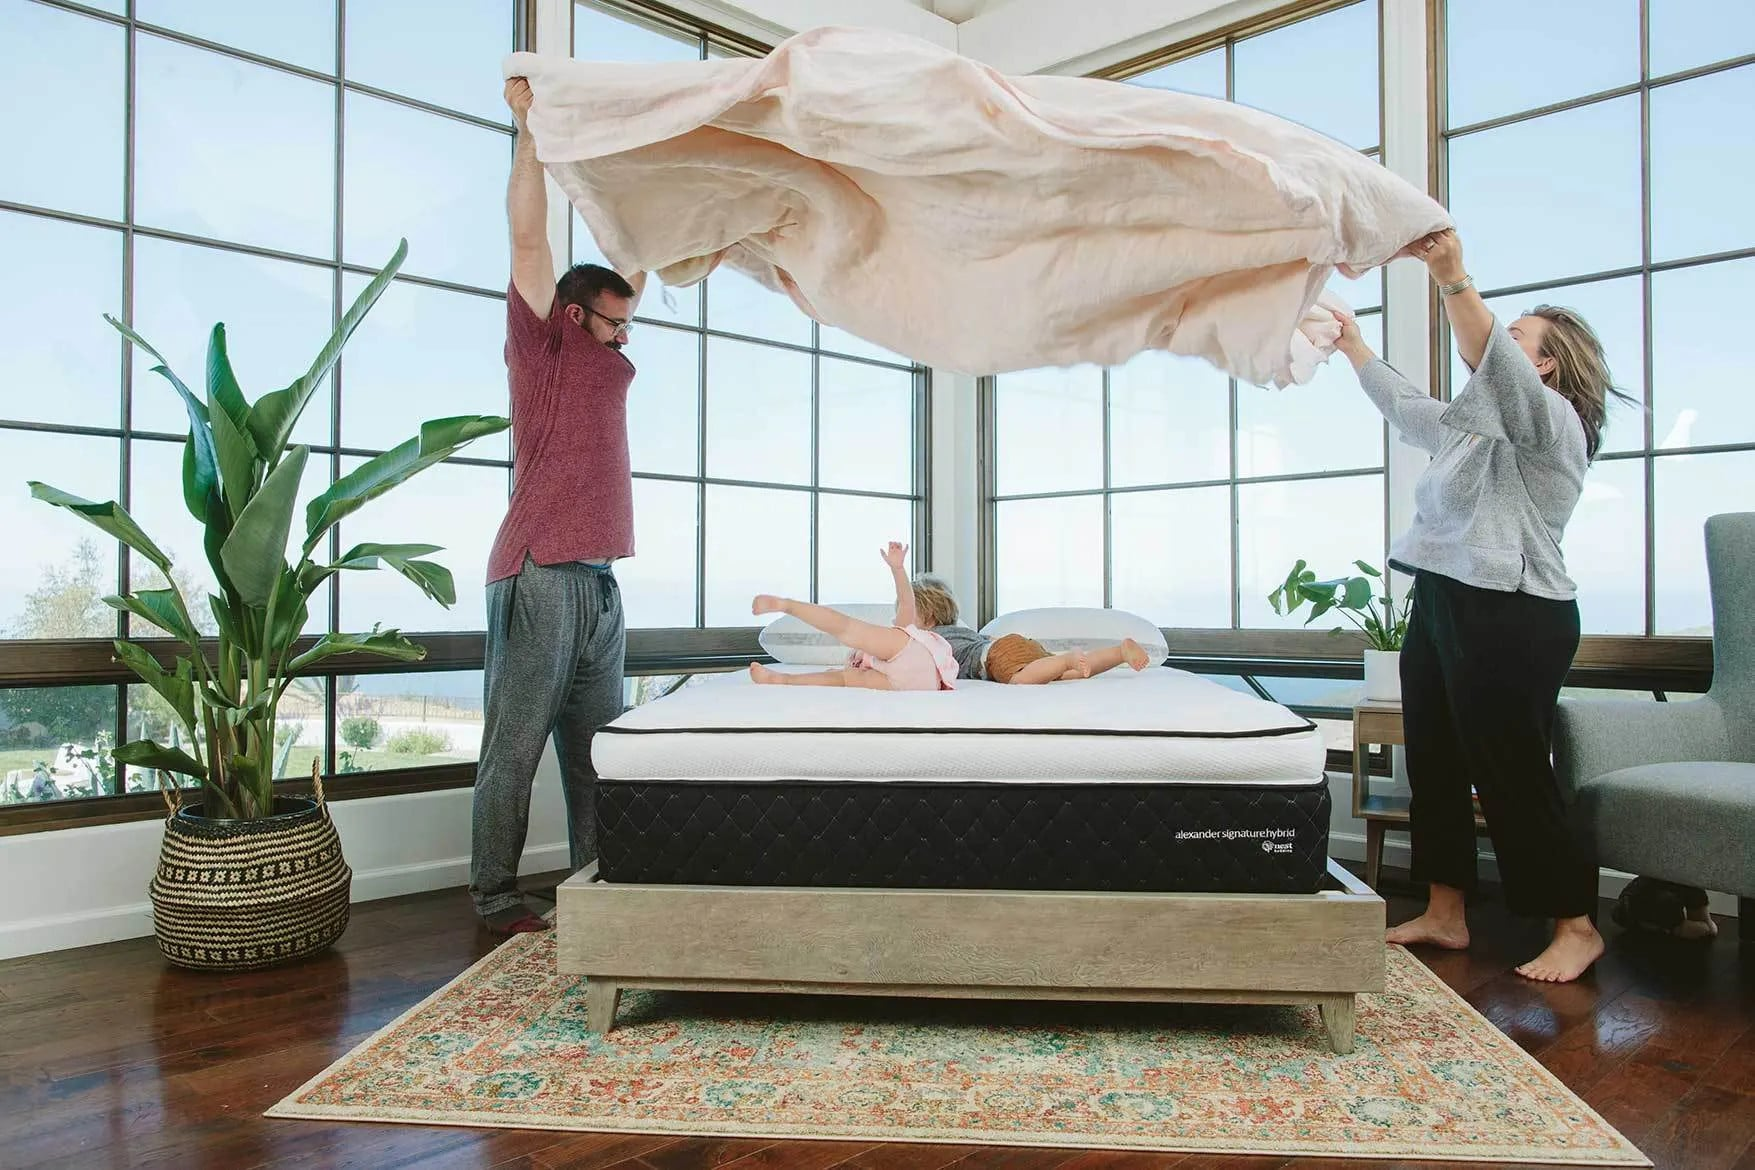 motion transfer which mattress is better?